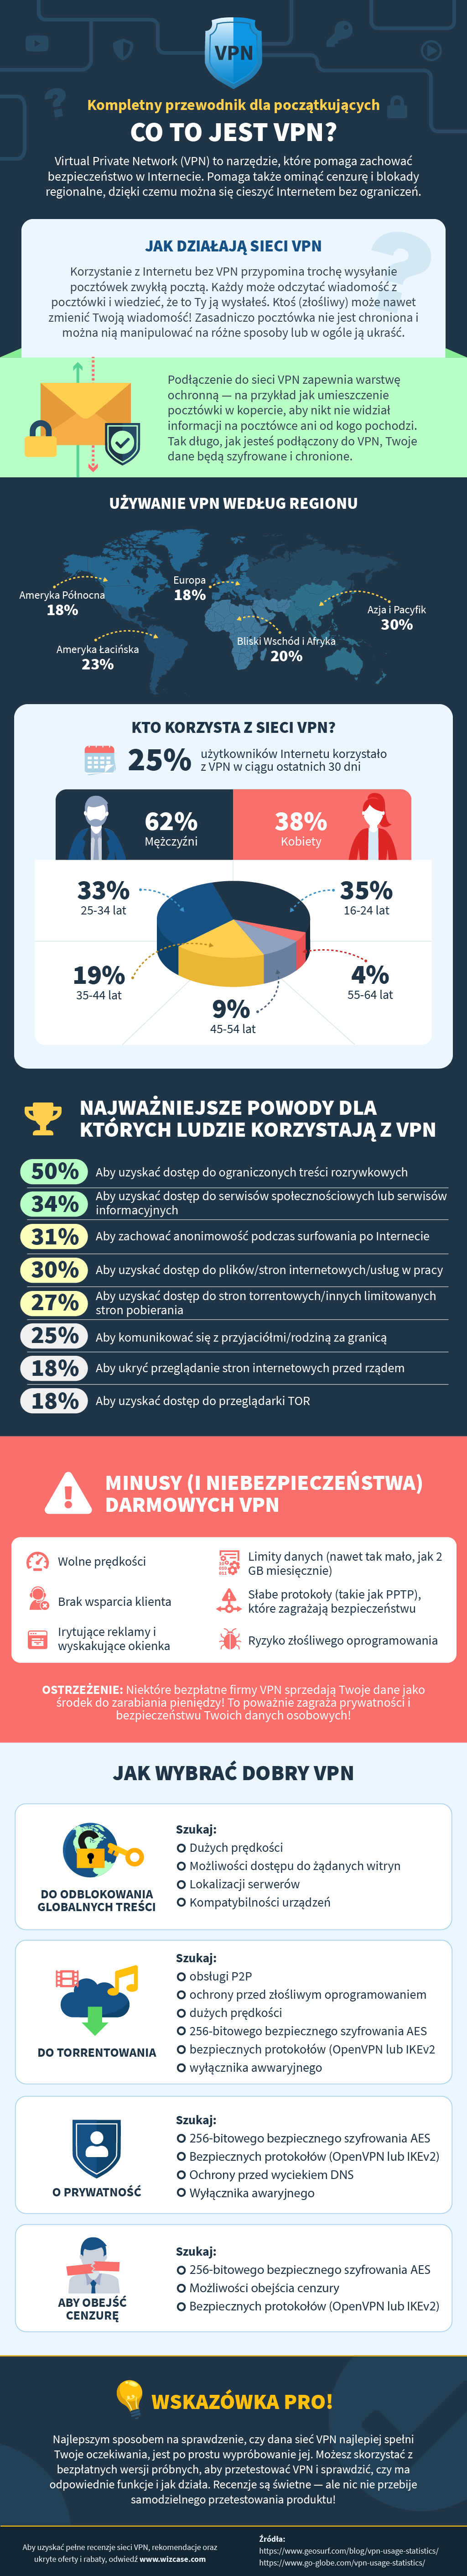 infographic guide to what is a VPN in Polish